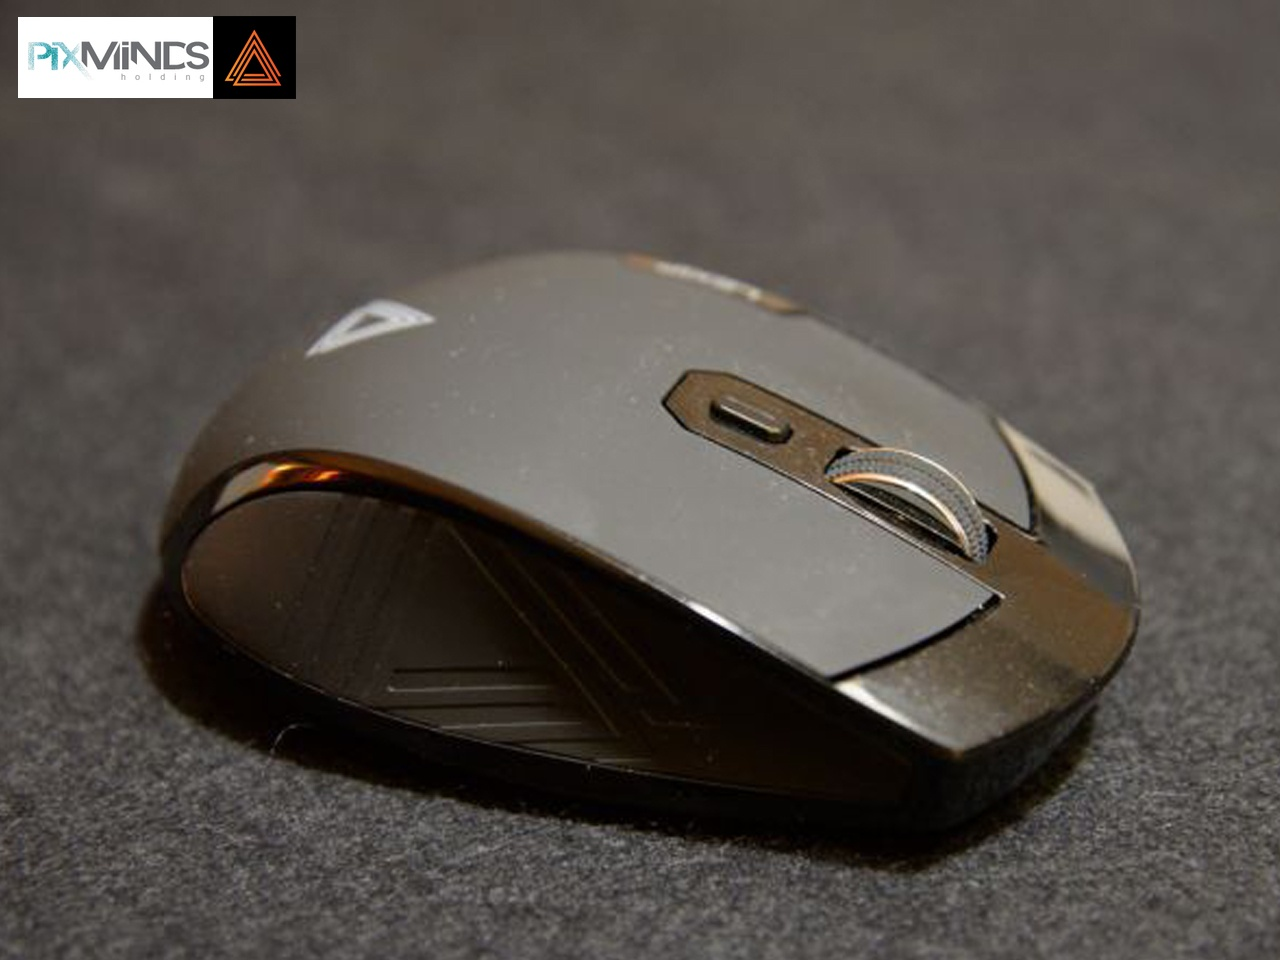 Lexip présente la souris gaming Made in France la plus innovante